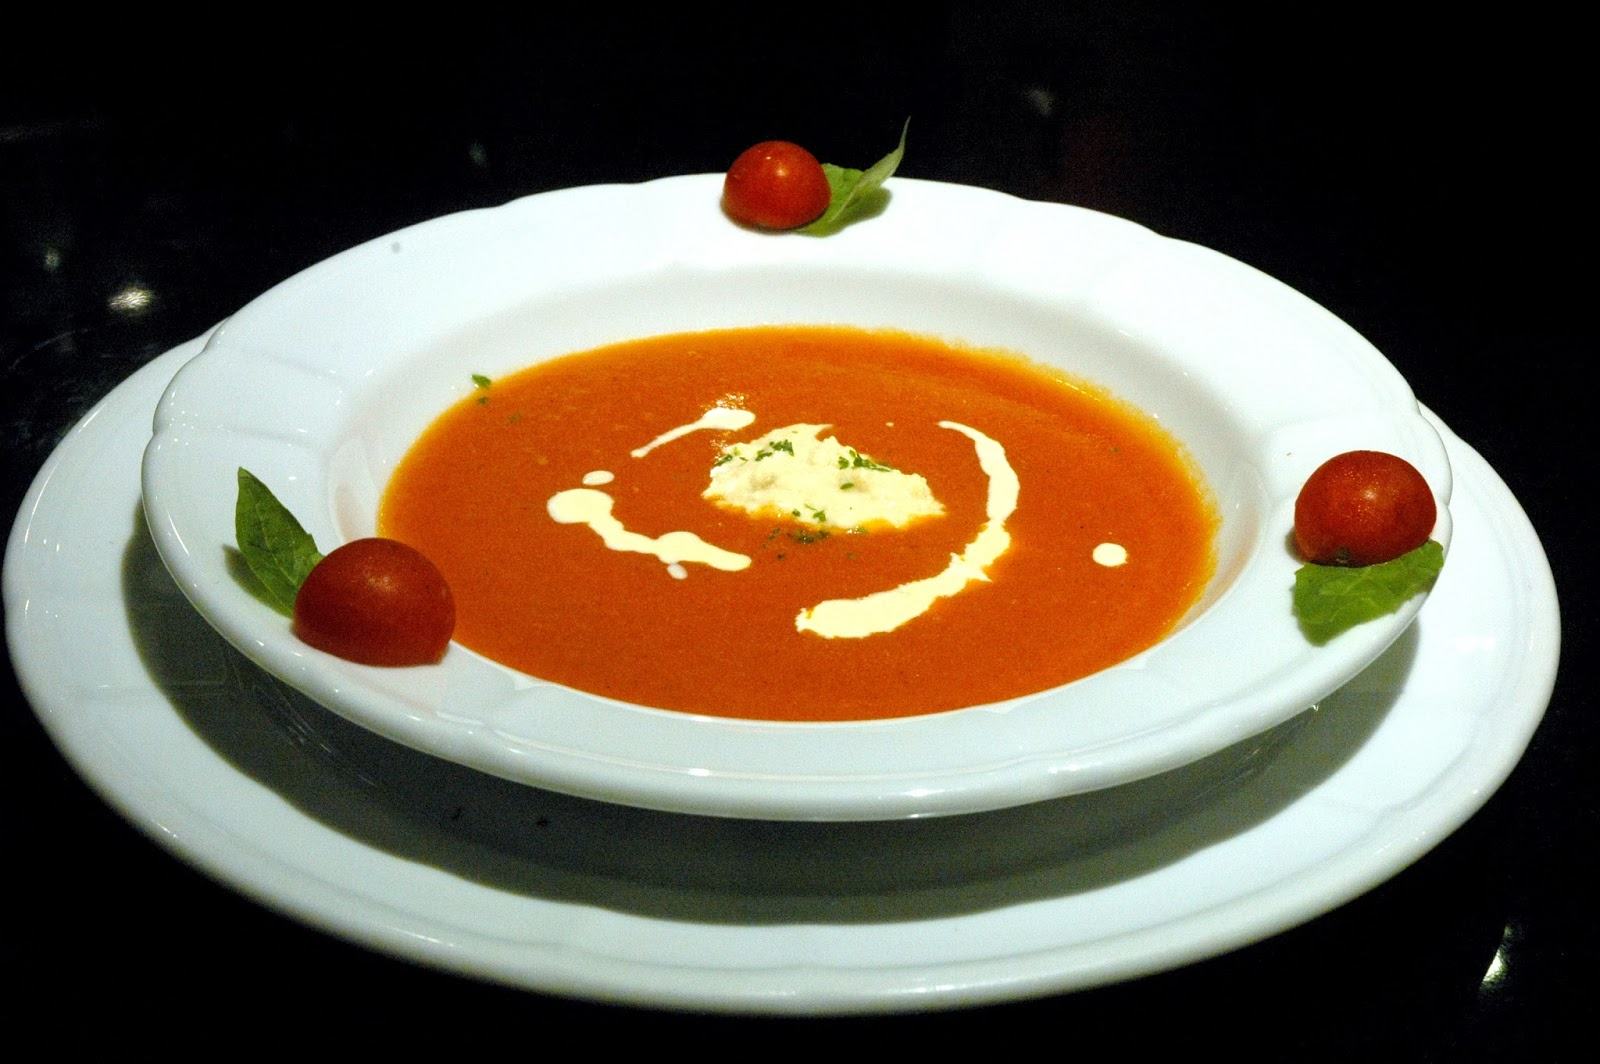 ... ravioli with ricotta cheese in tomato sauce, a simple dish with rich